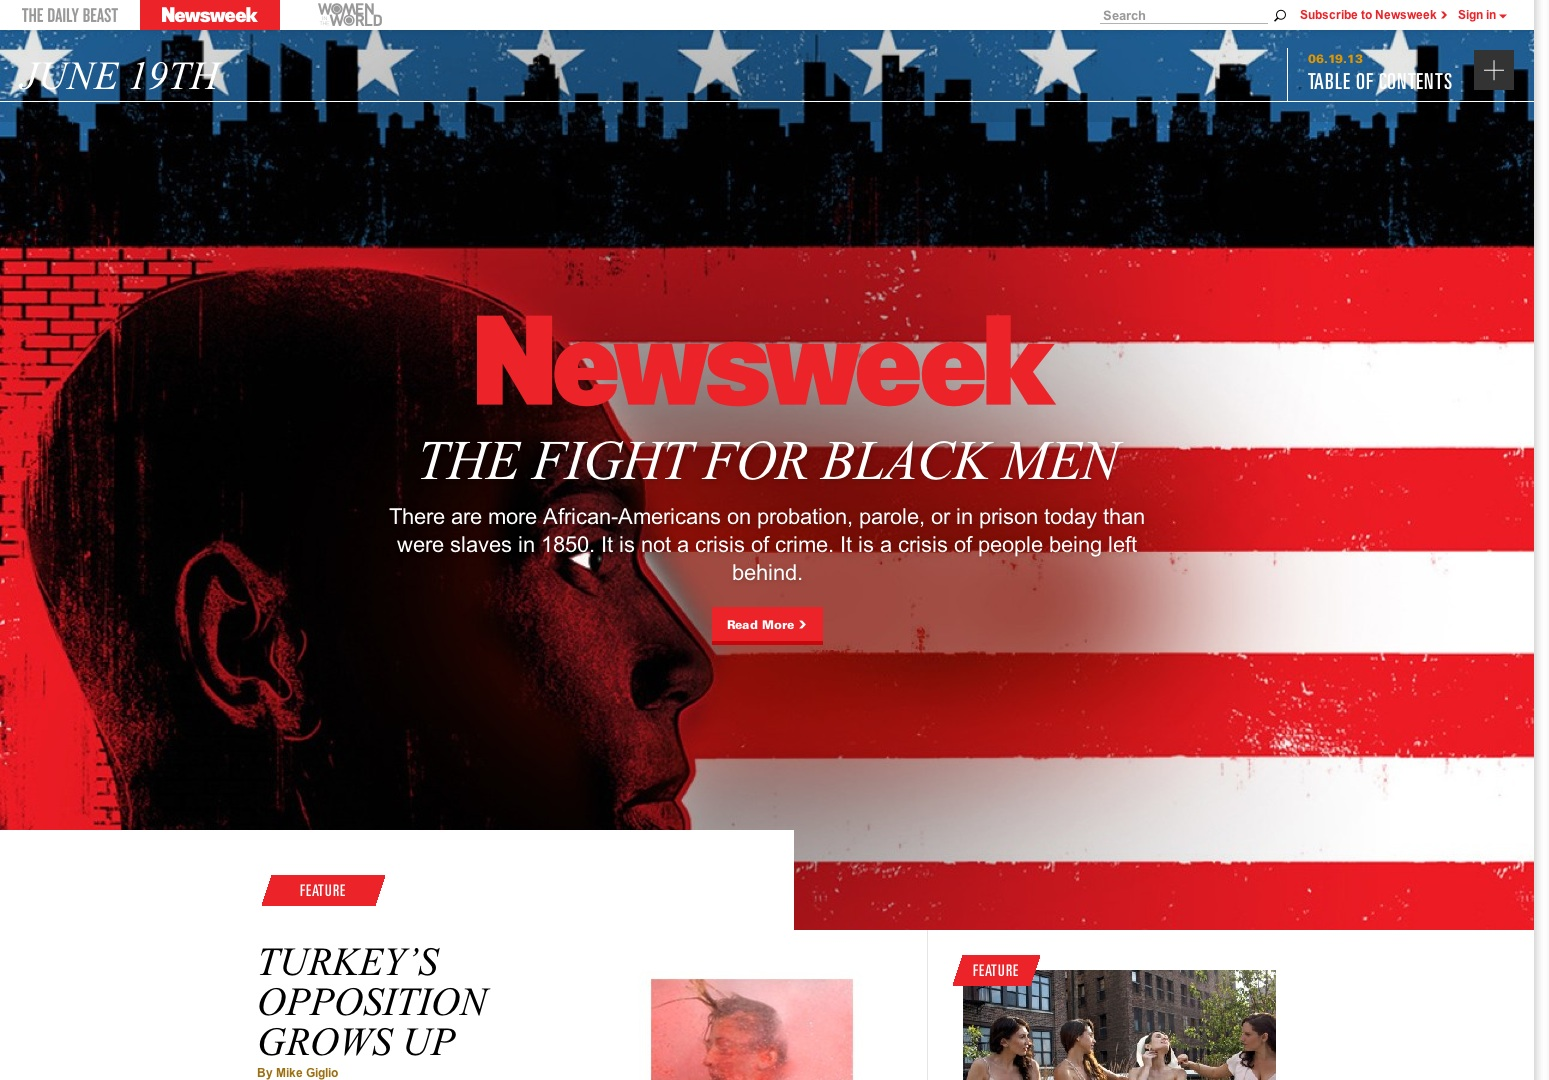 Newsweek - Newsweek and The Daily Beast